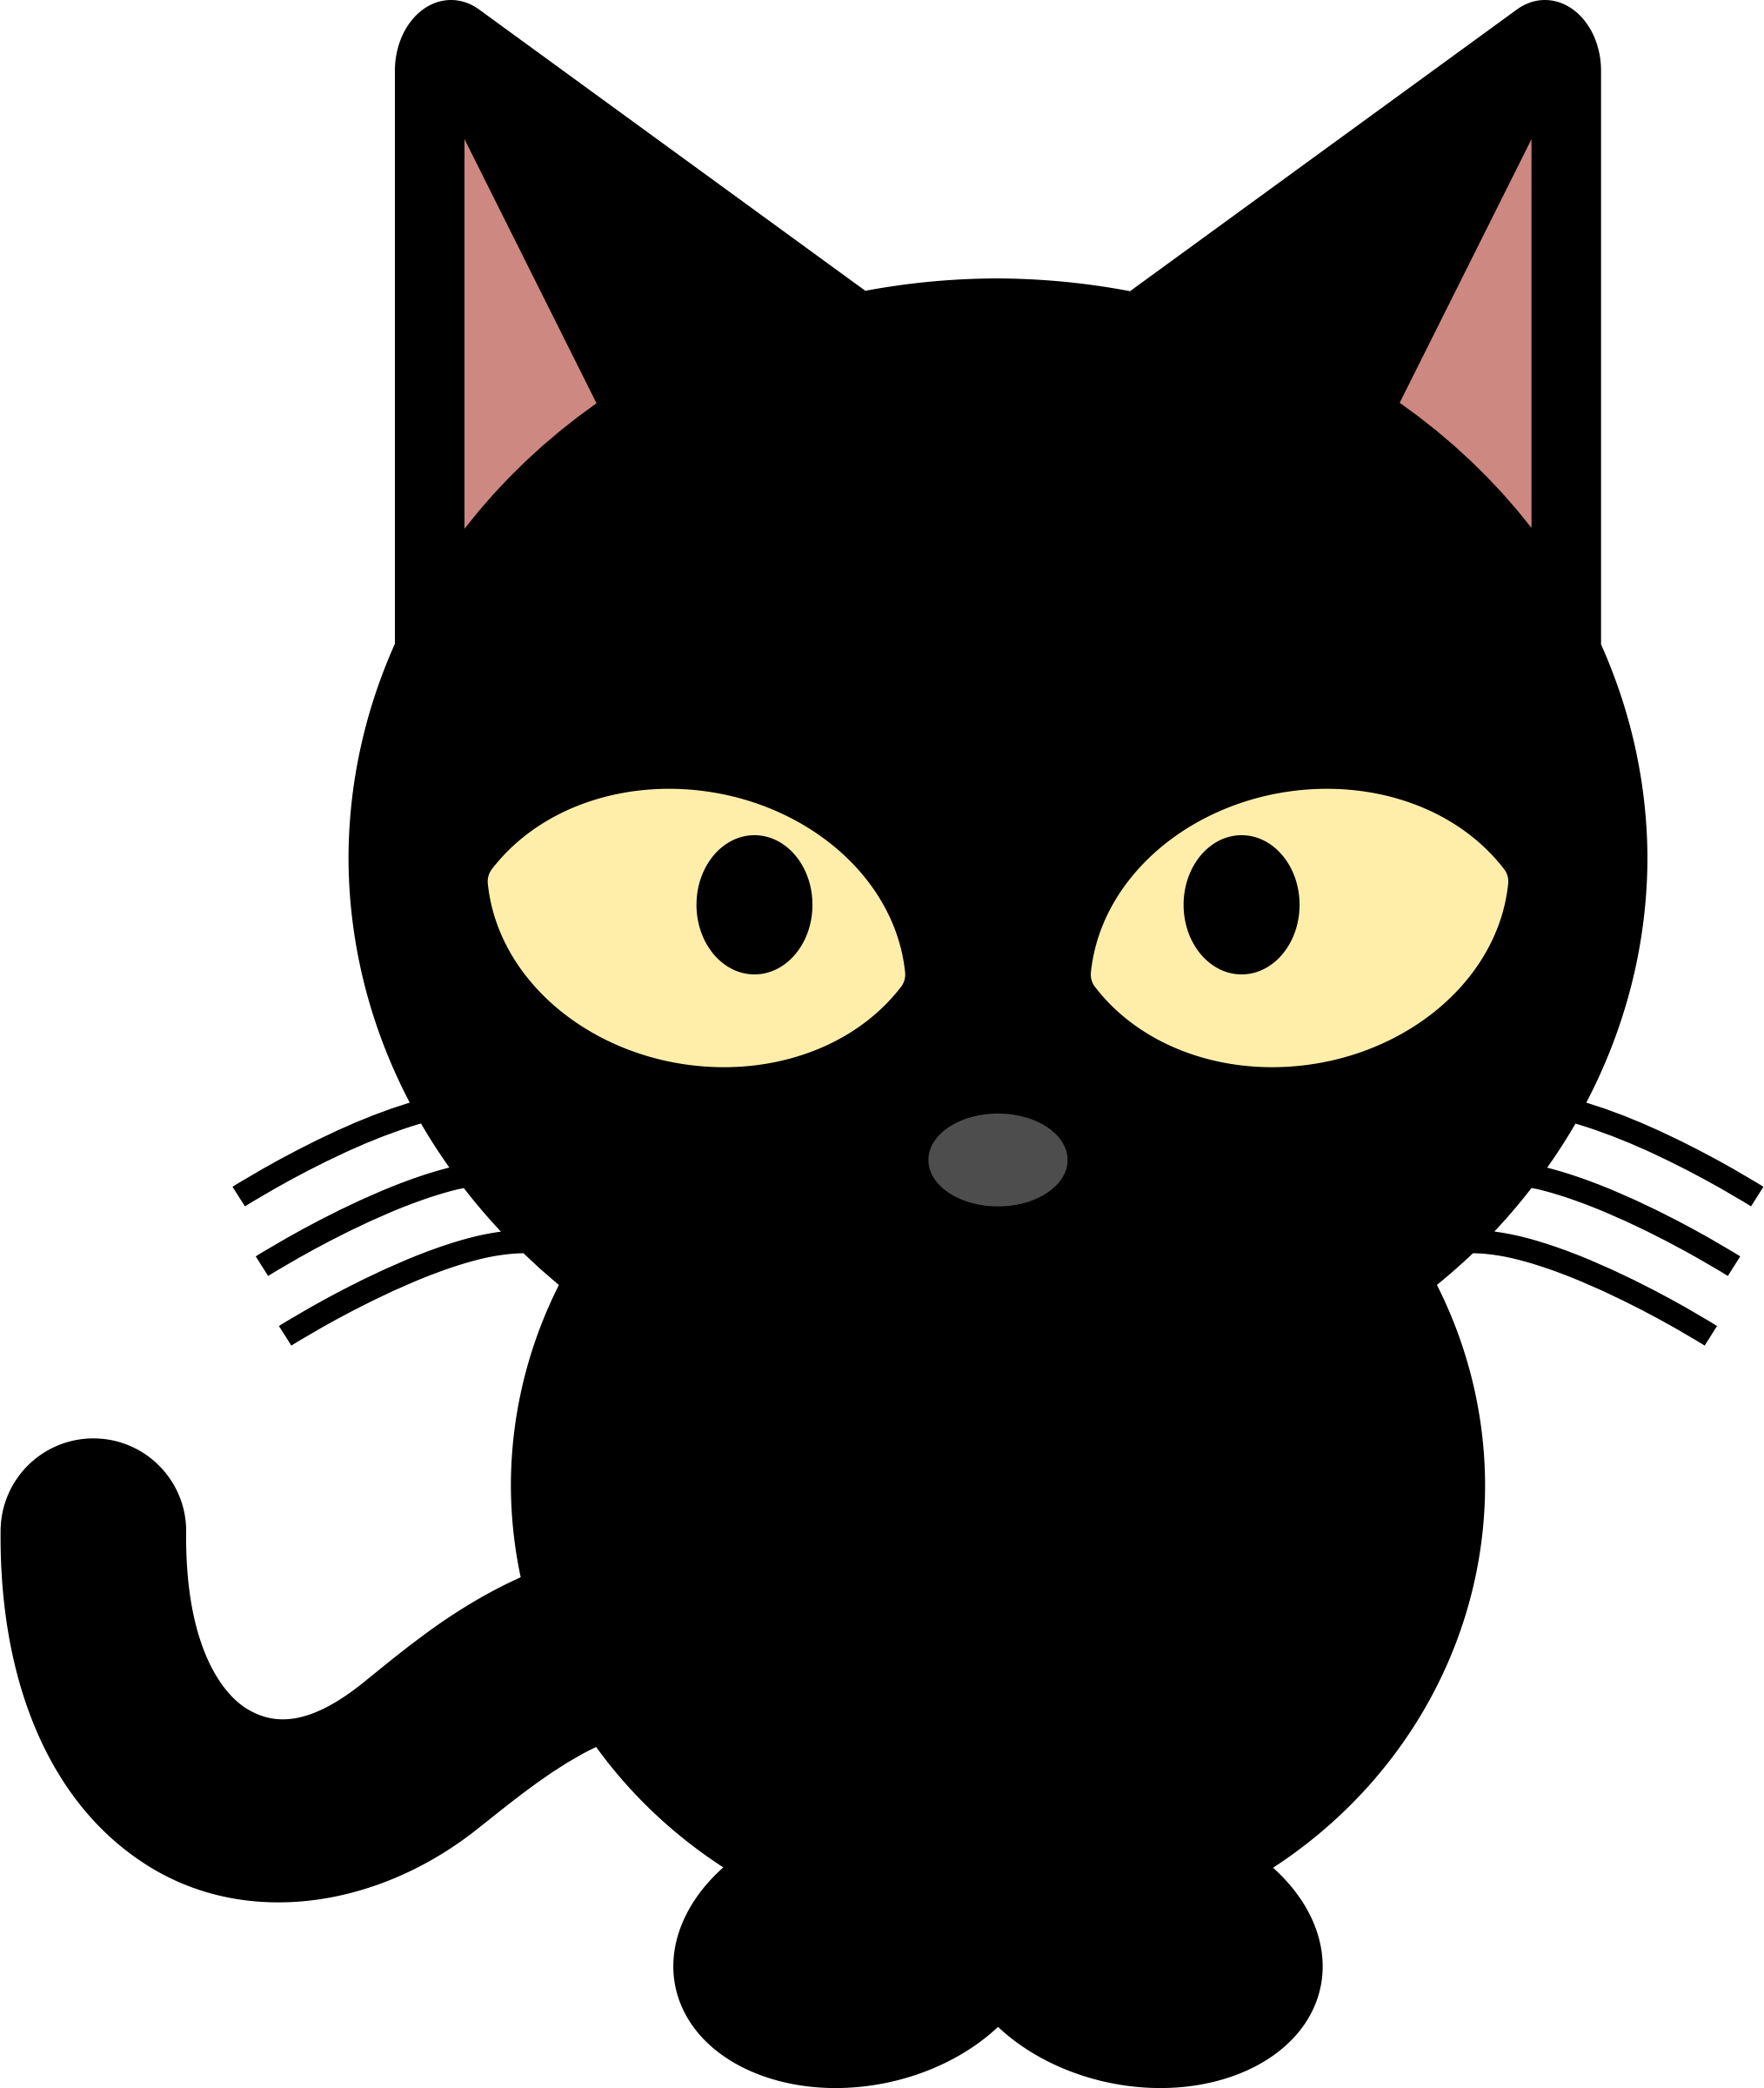 Image id png photo. Fire clipart cat